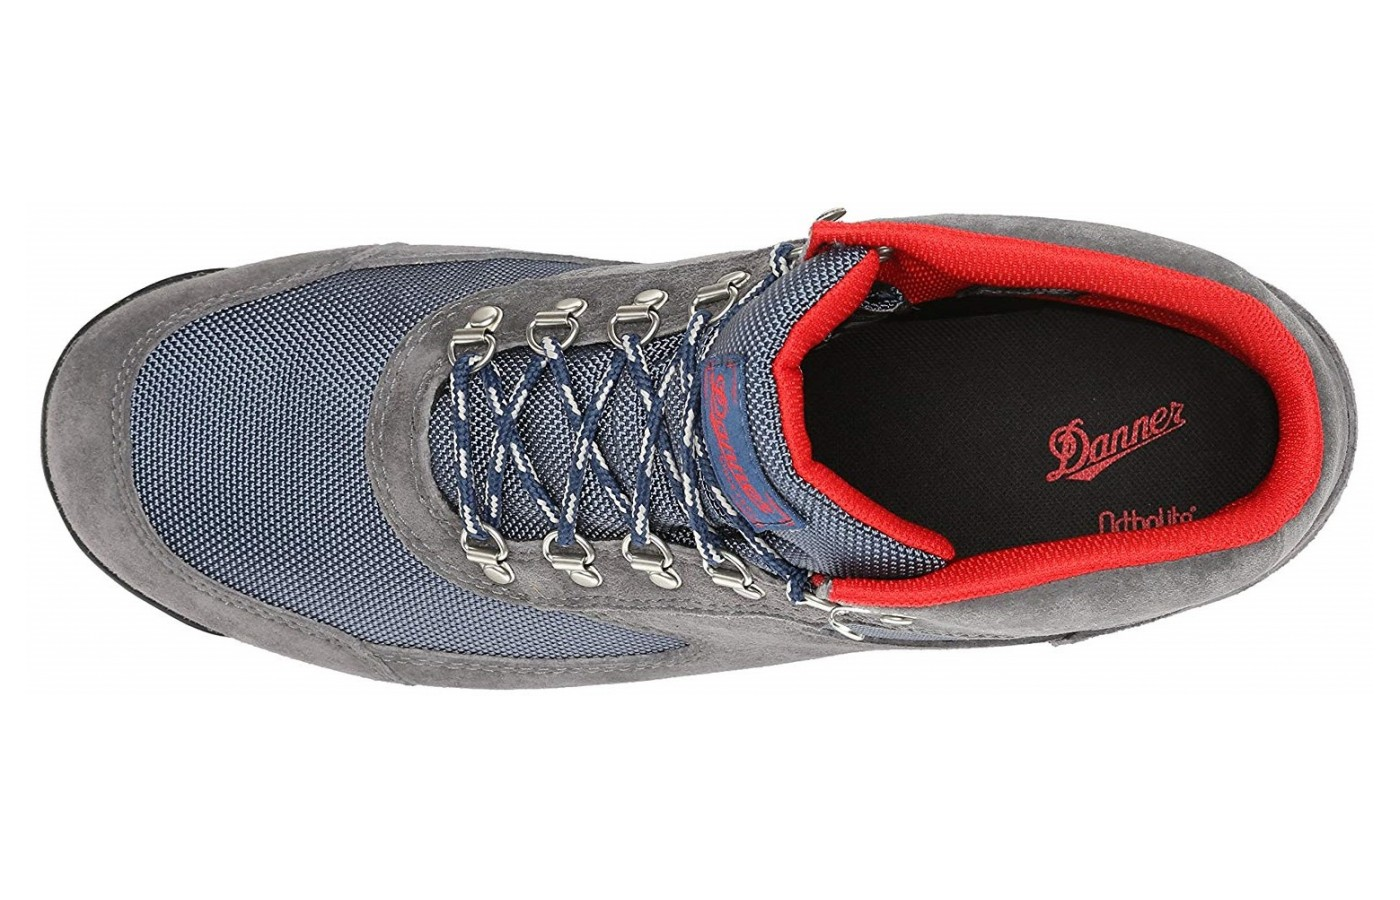 The open-cell PU foam of the Ortholite insole is 95 to 100 percent breathable.